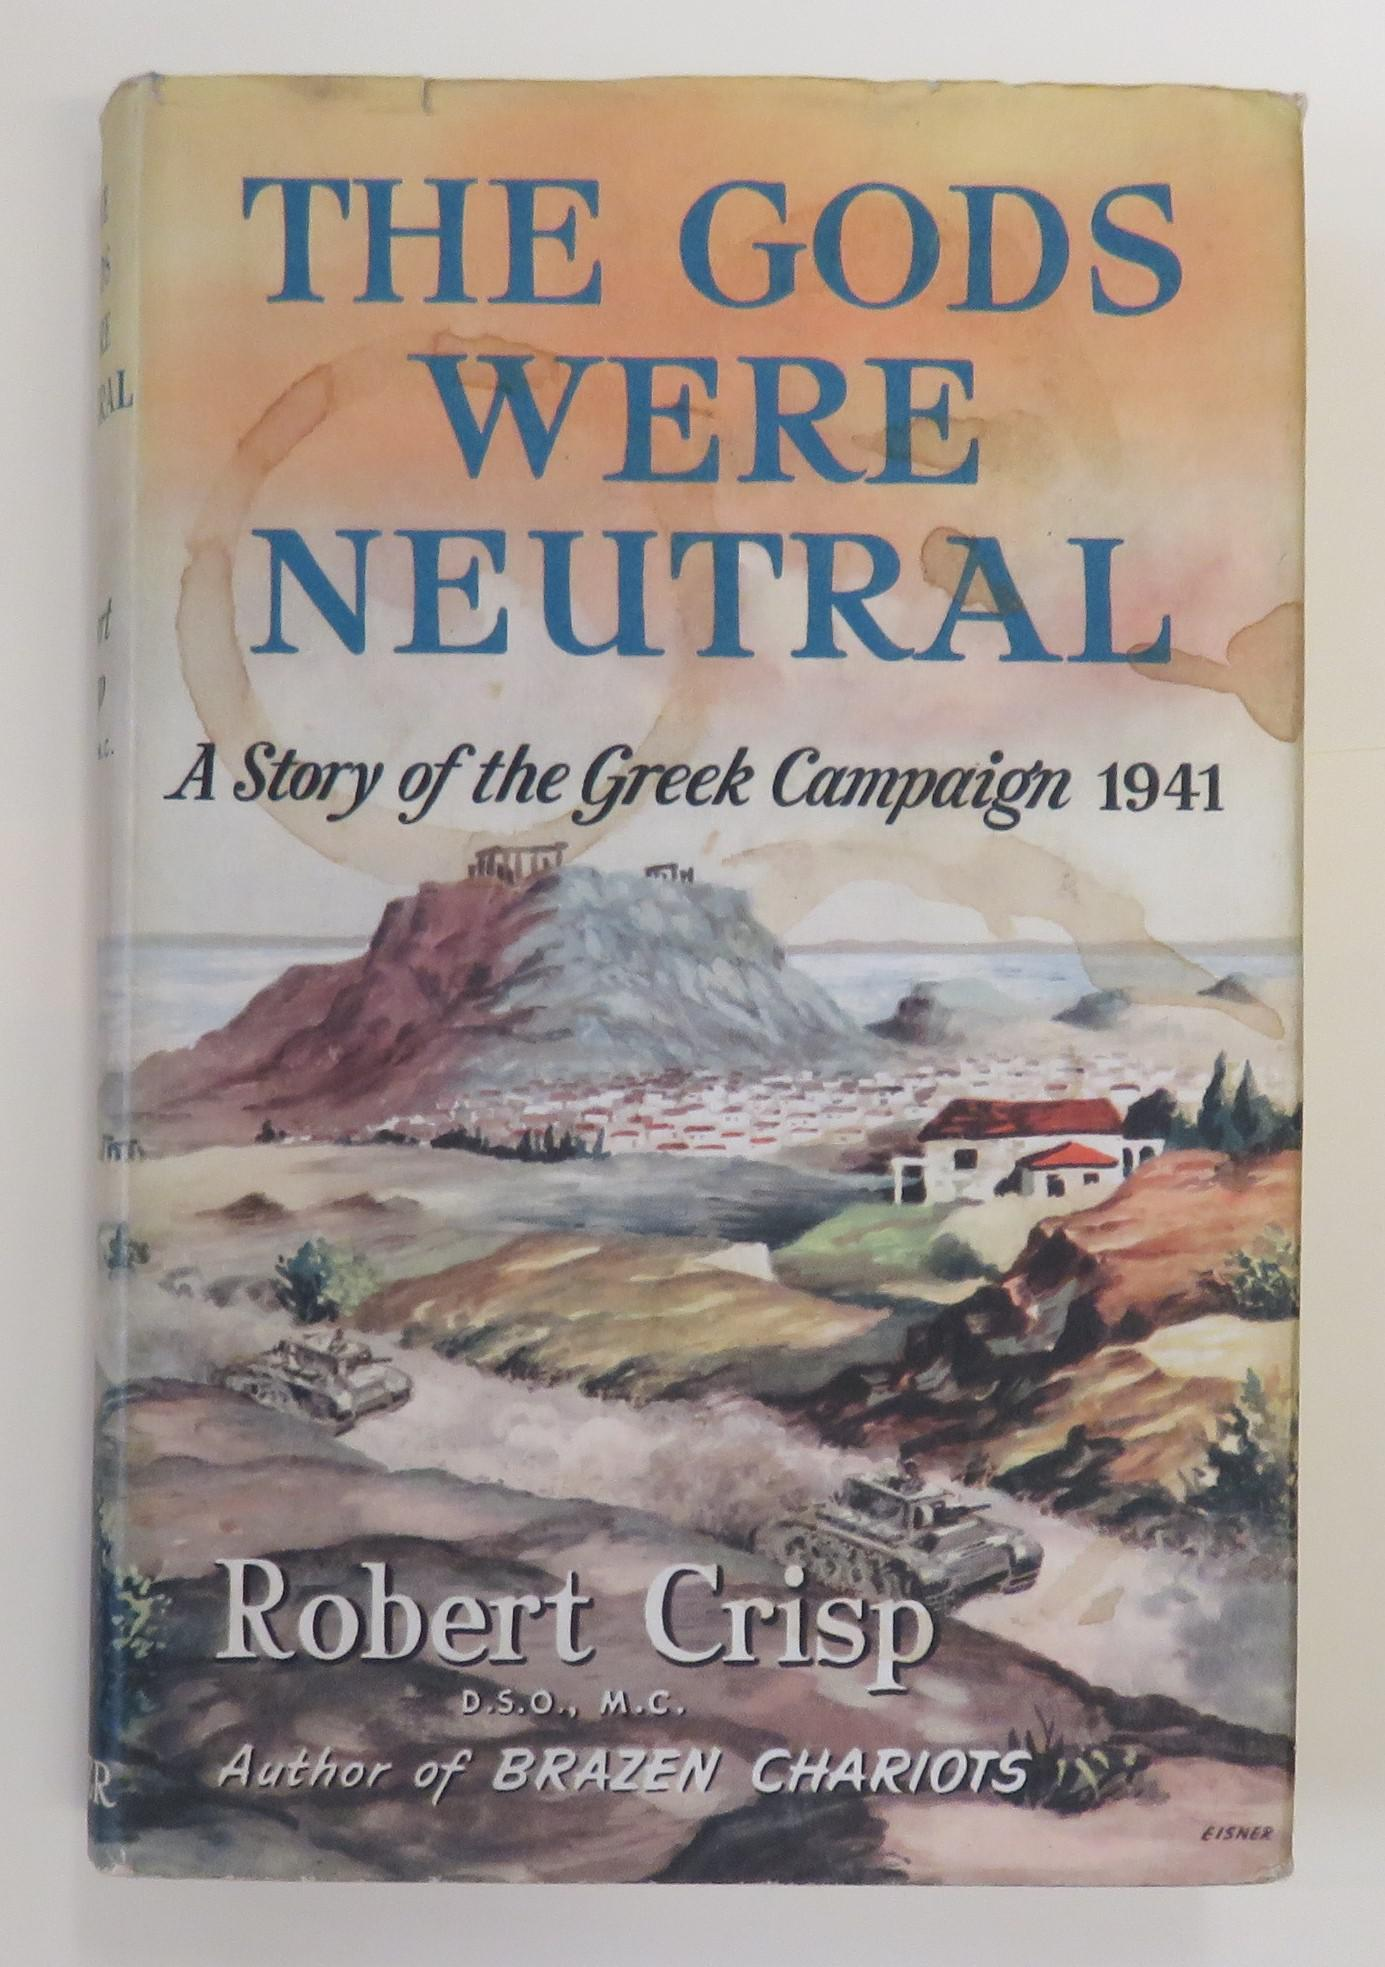 The Gods Were Neutral: A Story of the Greek Campagin 1941